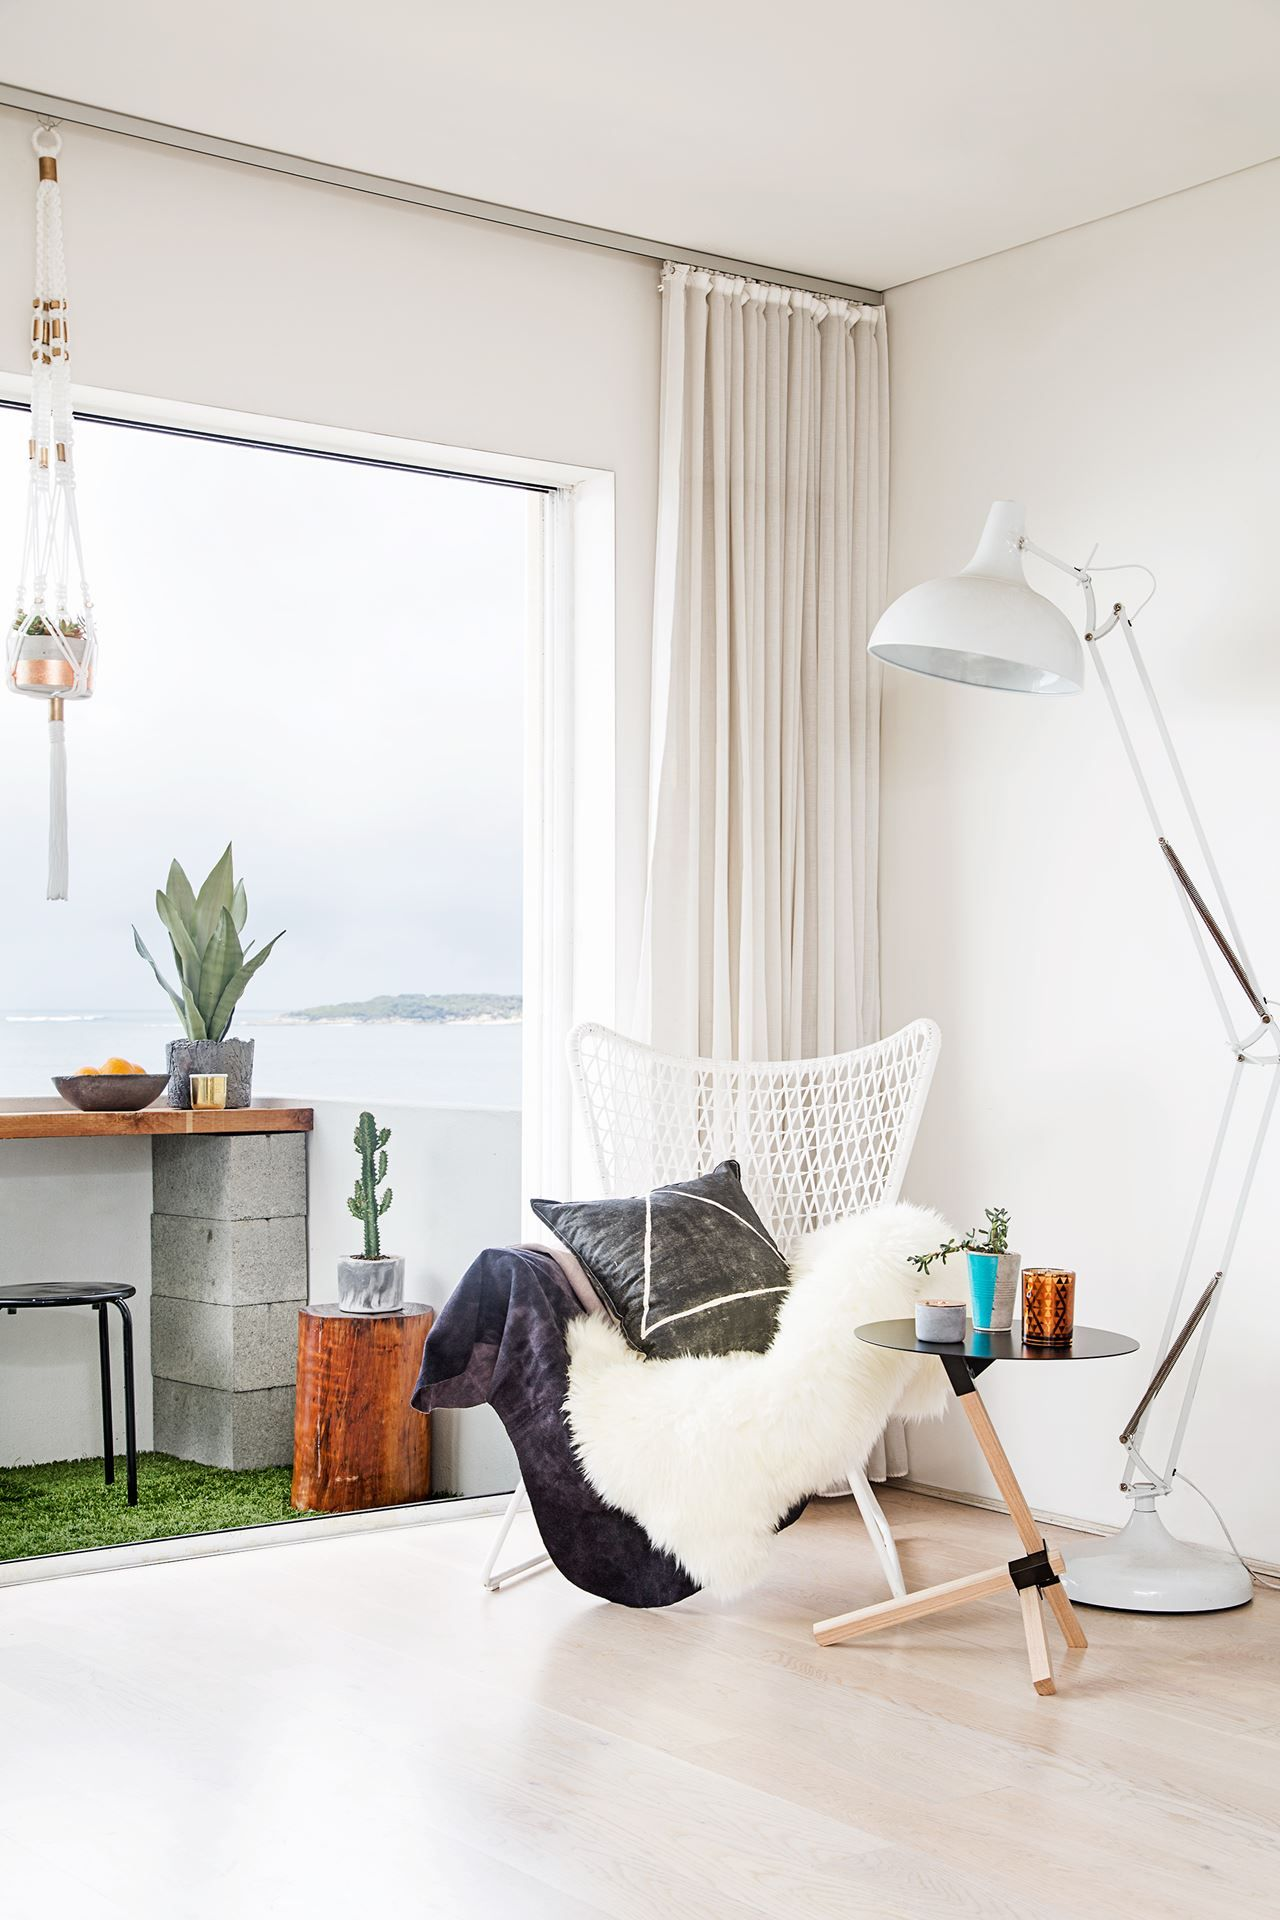 Apartment Balcony With Ocean View Synthetic Grass Floor